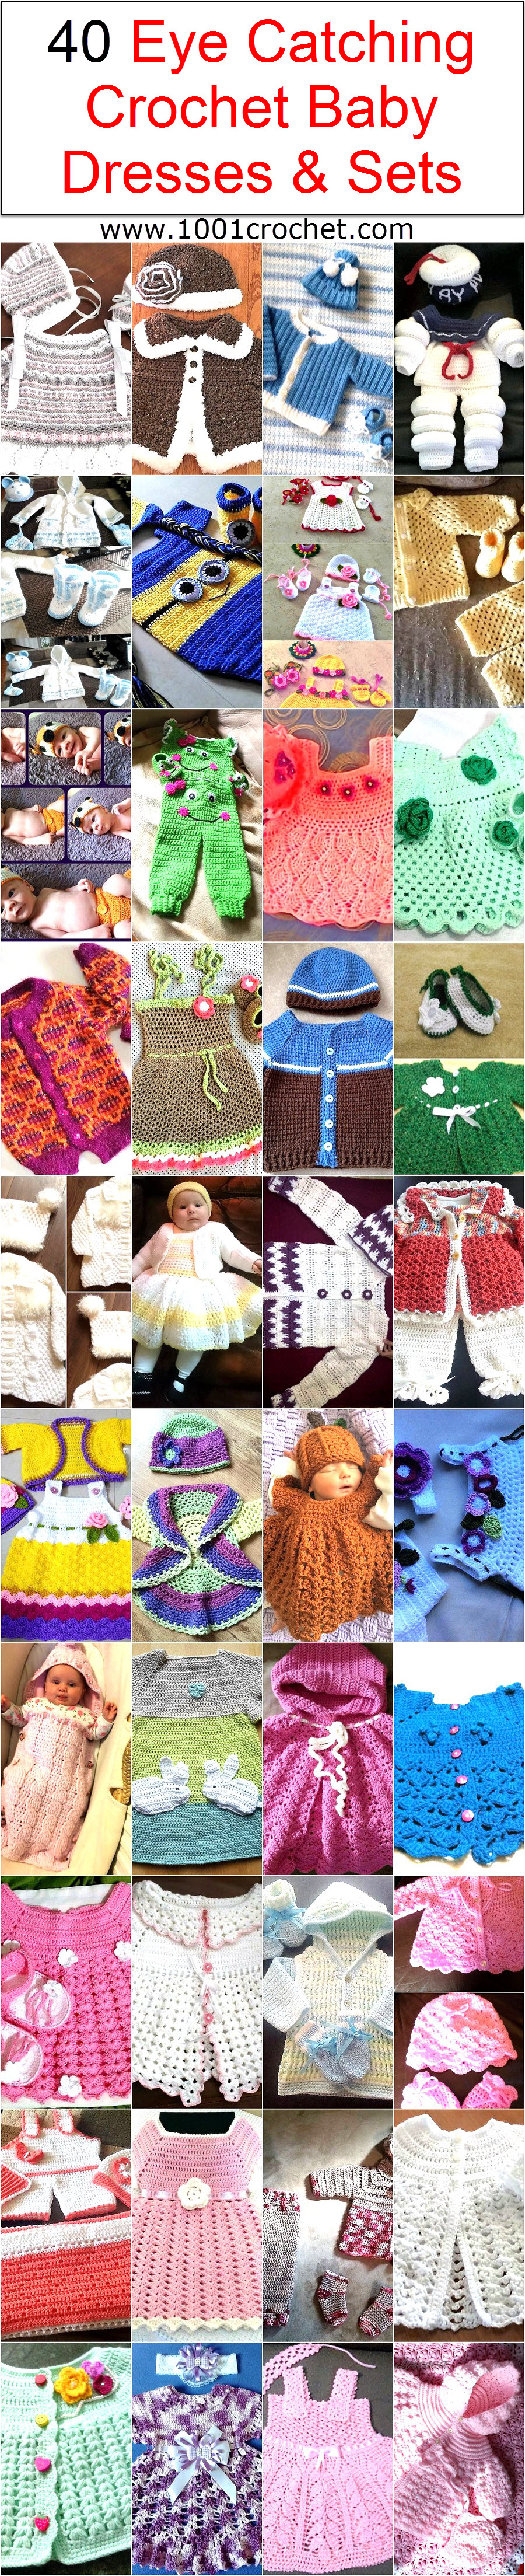 40-eye-catching-crochet-baby-dresses-sets